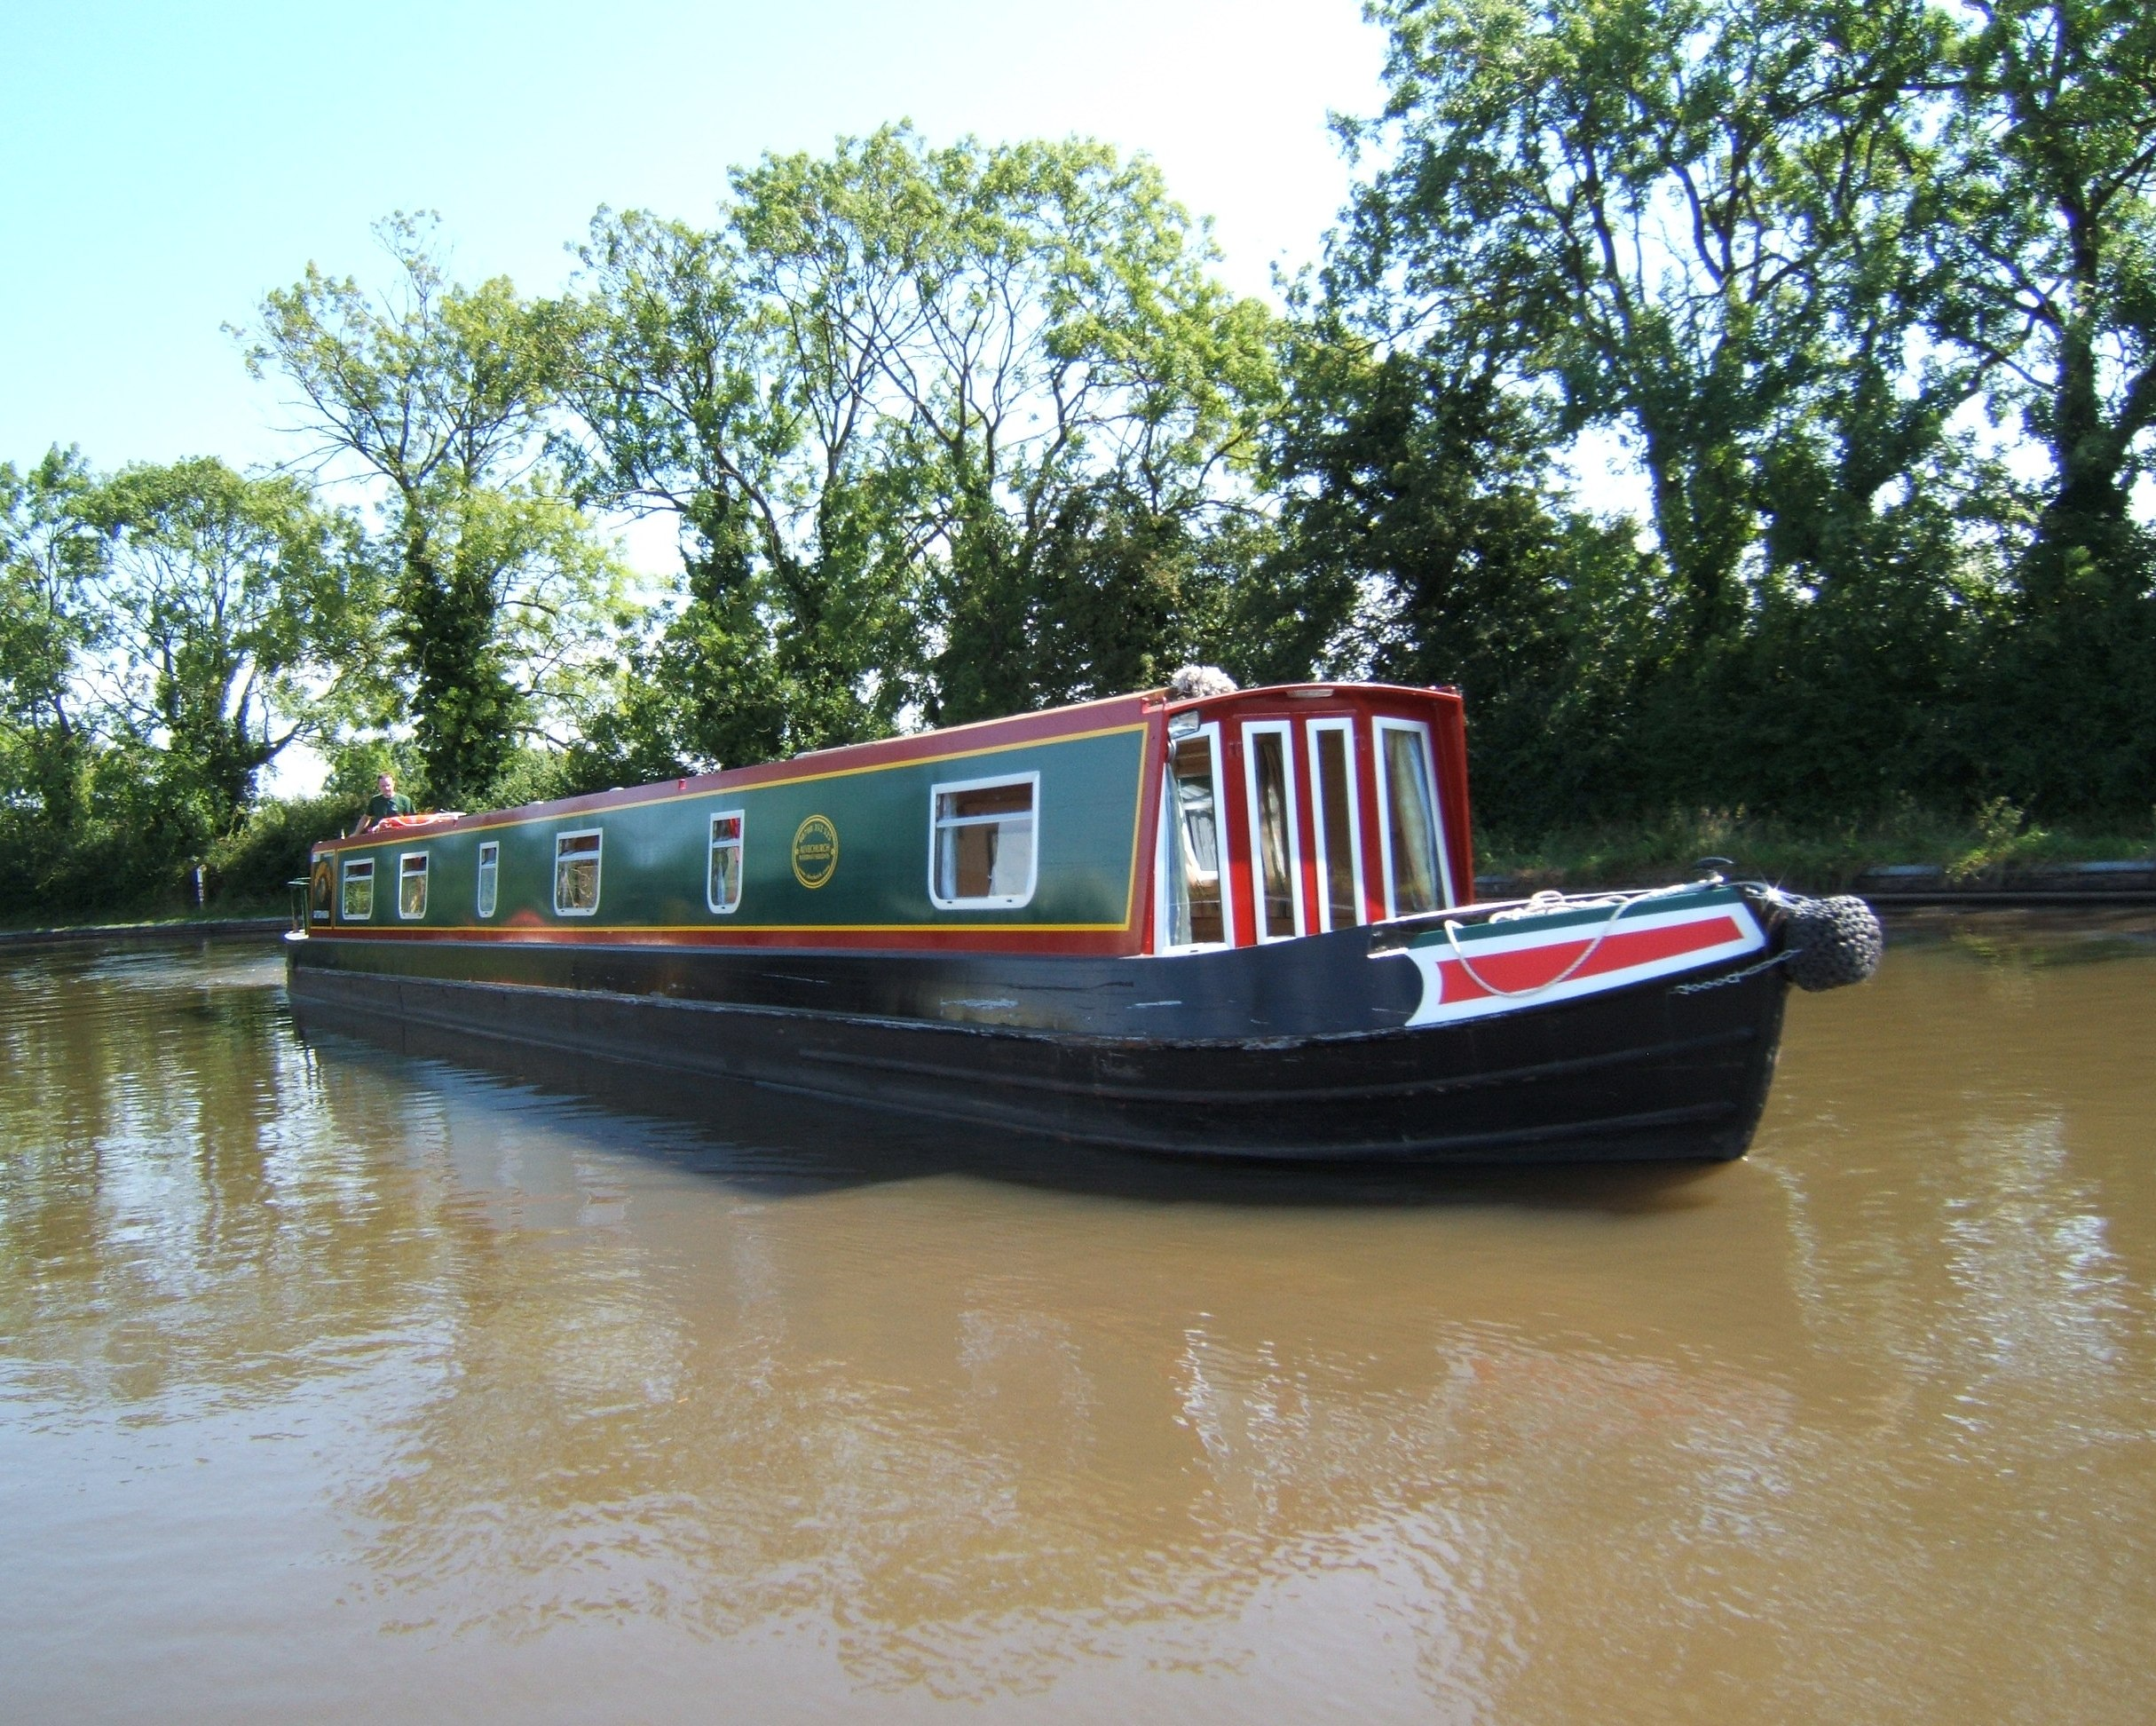 The Sandpiper class canal boat